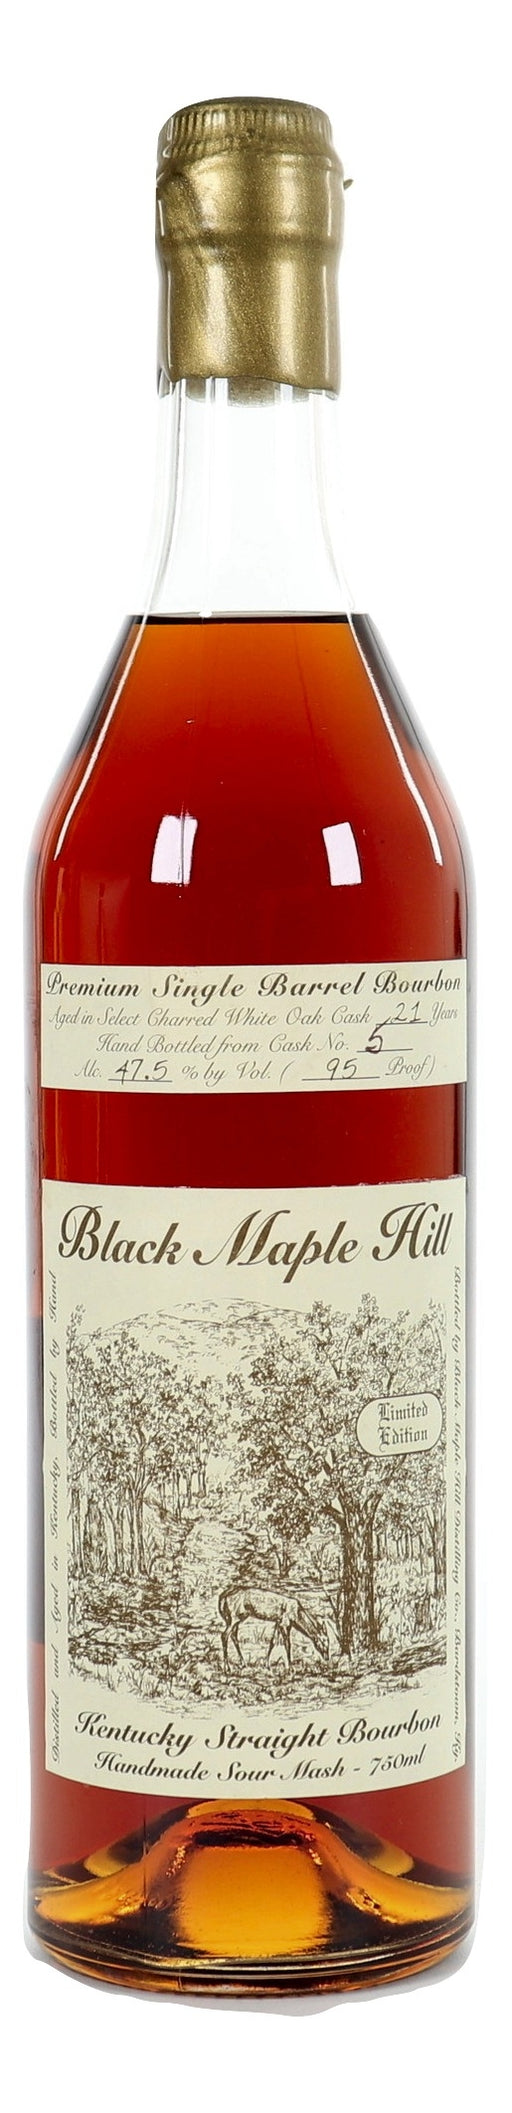 Black Maple Hill 21 Year Old Single Barrel Bourbon For Sale - NativeSpiritsOnline